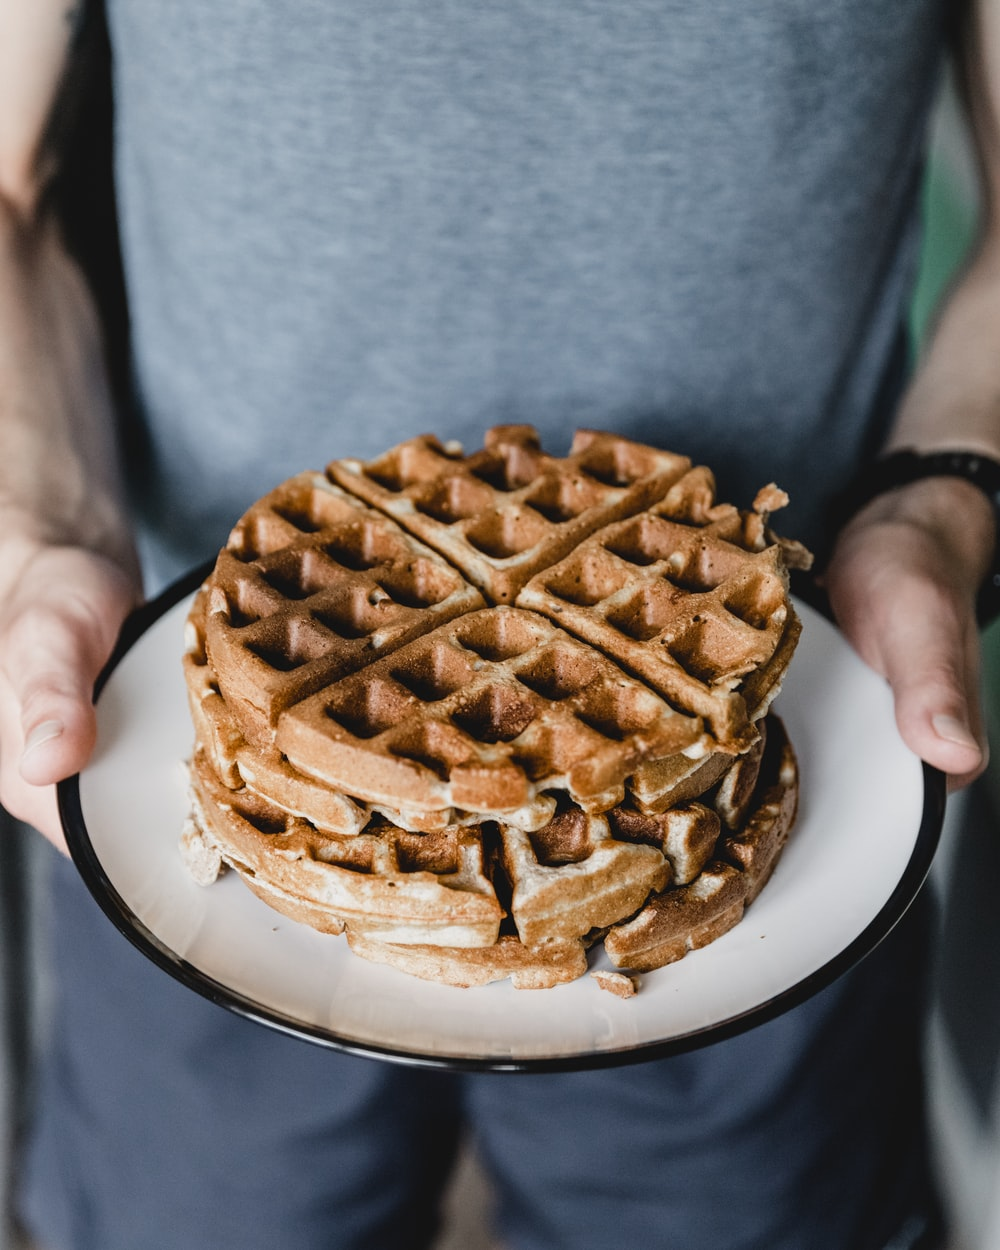 person holding plate with waffles